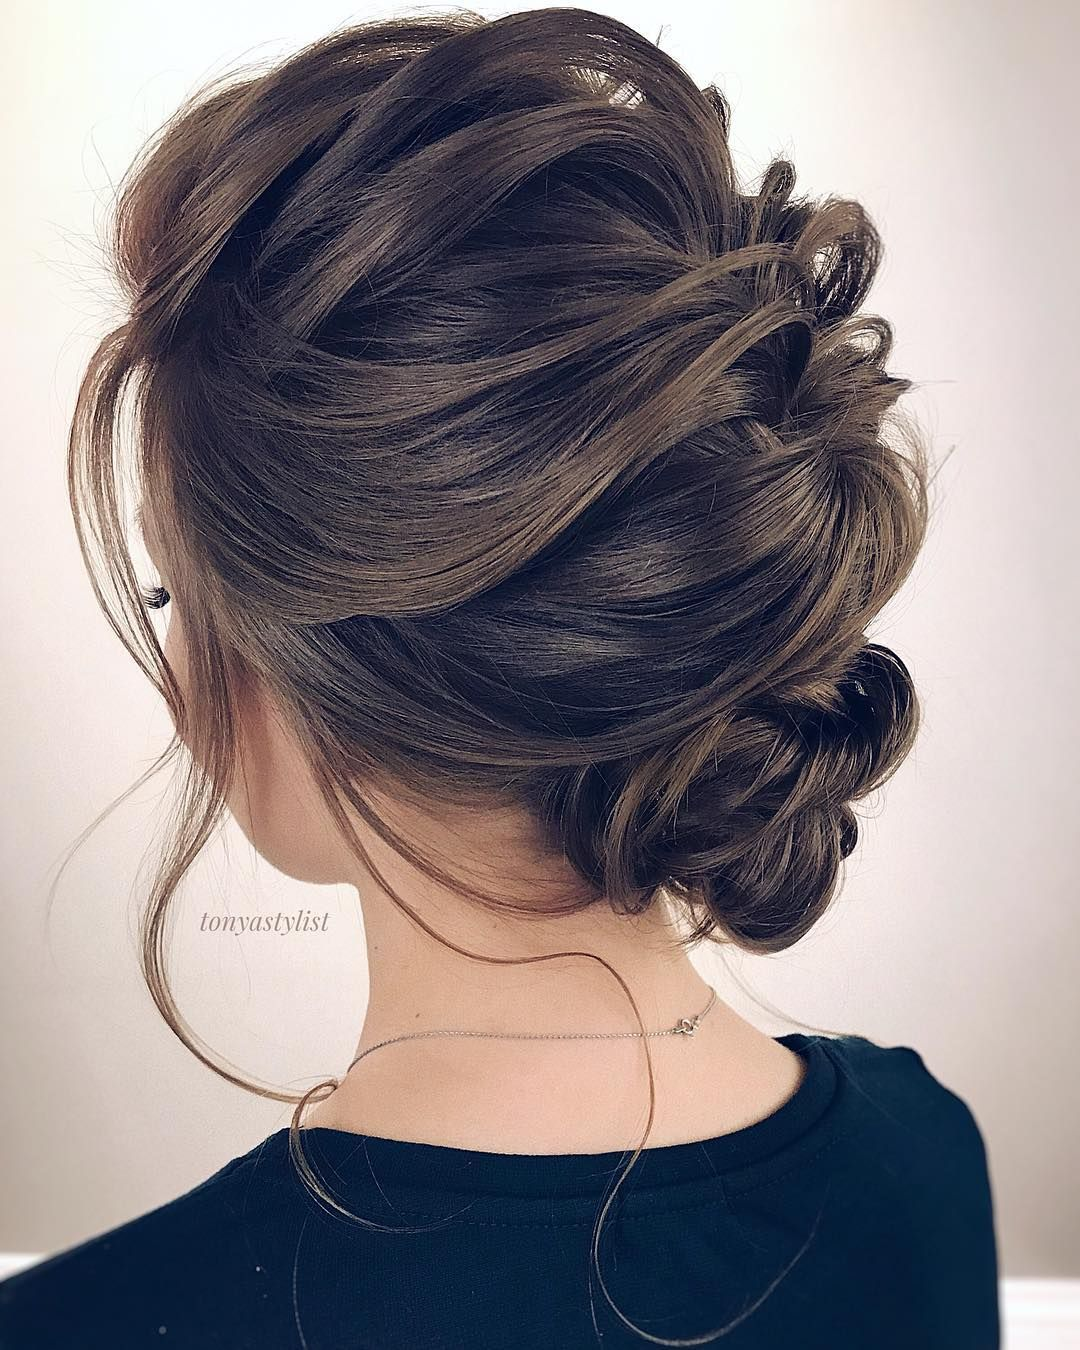 20 Medium Length Wedding Hairstyles For 2021 Brides Emmalovesweddings Short Hair Updo Medium Hair Styles Medium Length Hair Styles